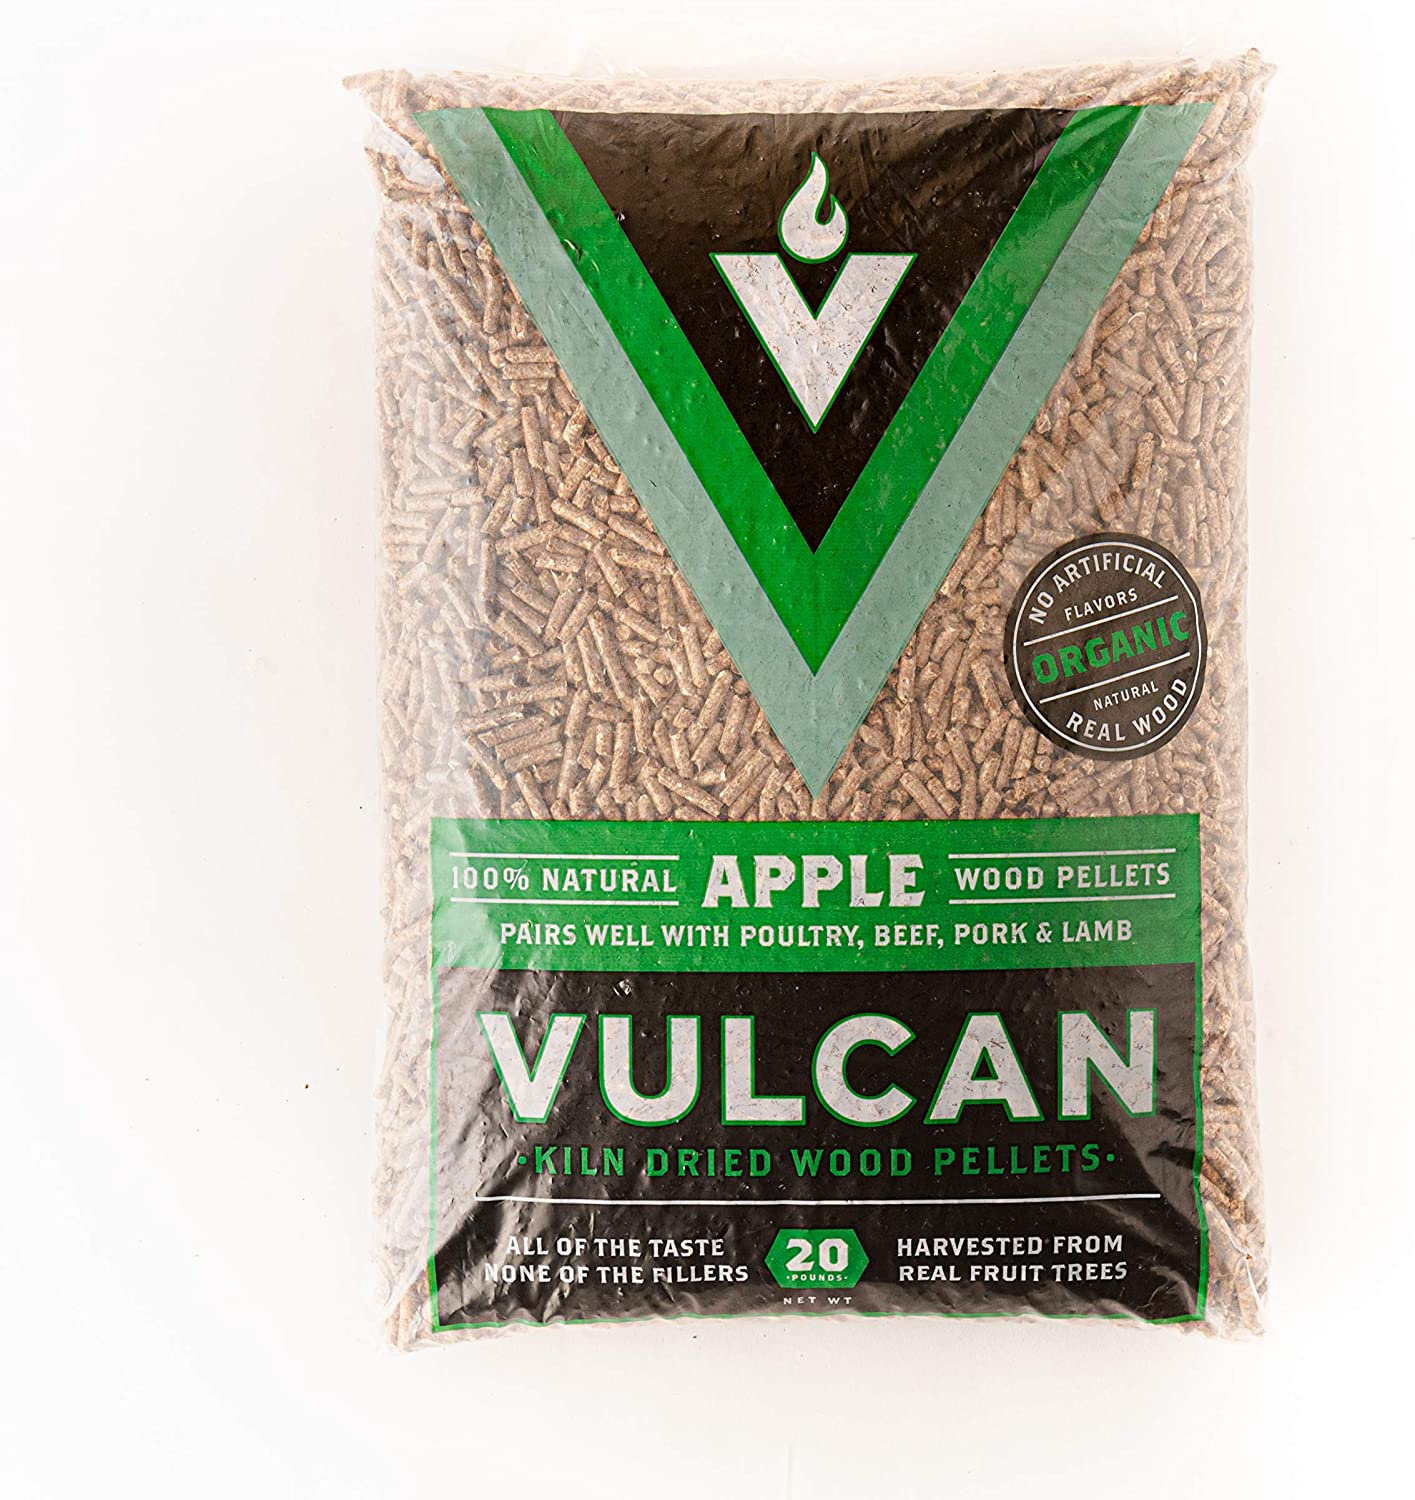 Vulcan Apple Grilling Wood Pellets | All Natural 100% Quality Kiln Dried Food-Grade Real Hardwood | Bold Smokey Rich Flavor for Outdoor Grill BBQ Smoker Smoking Meat | Organic, No Artificial Flavors